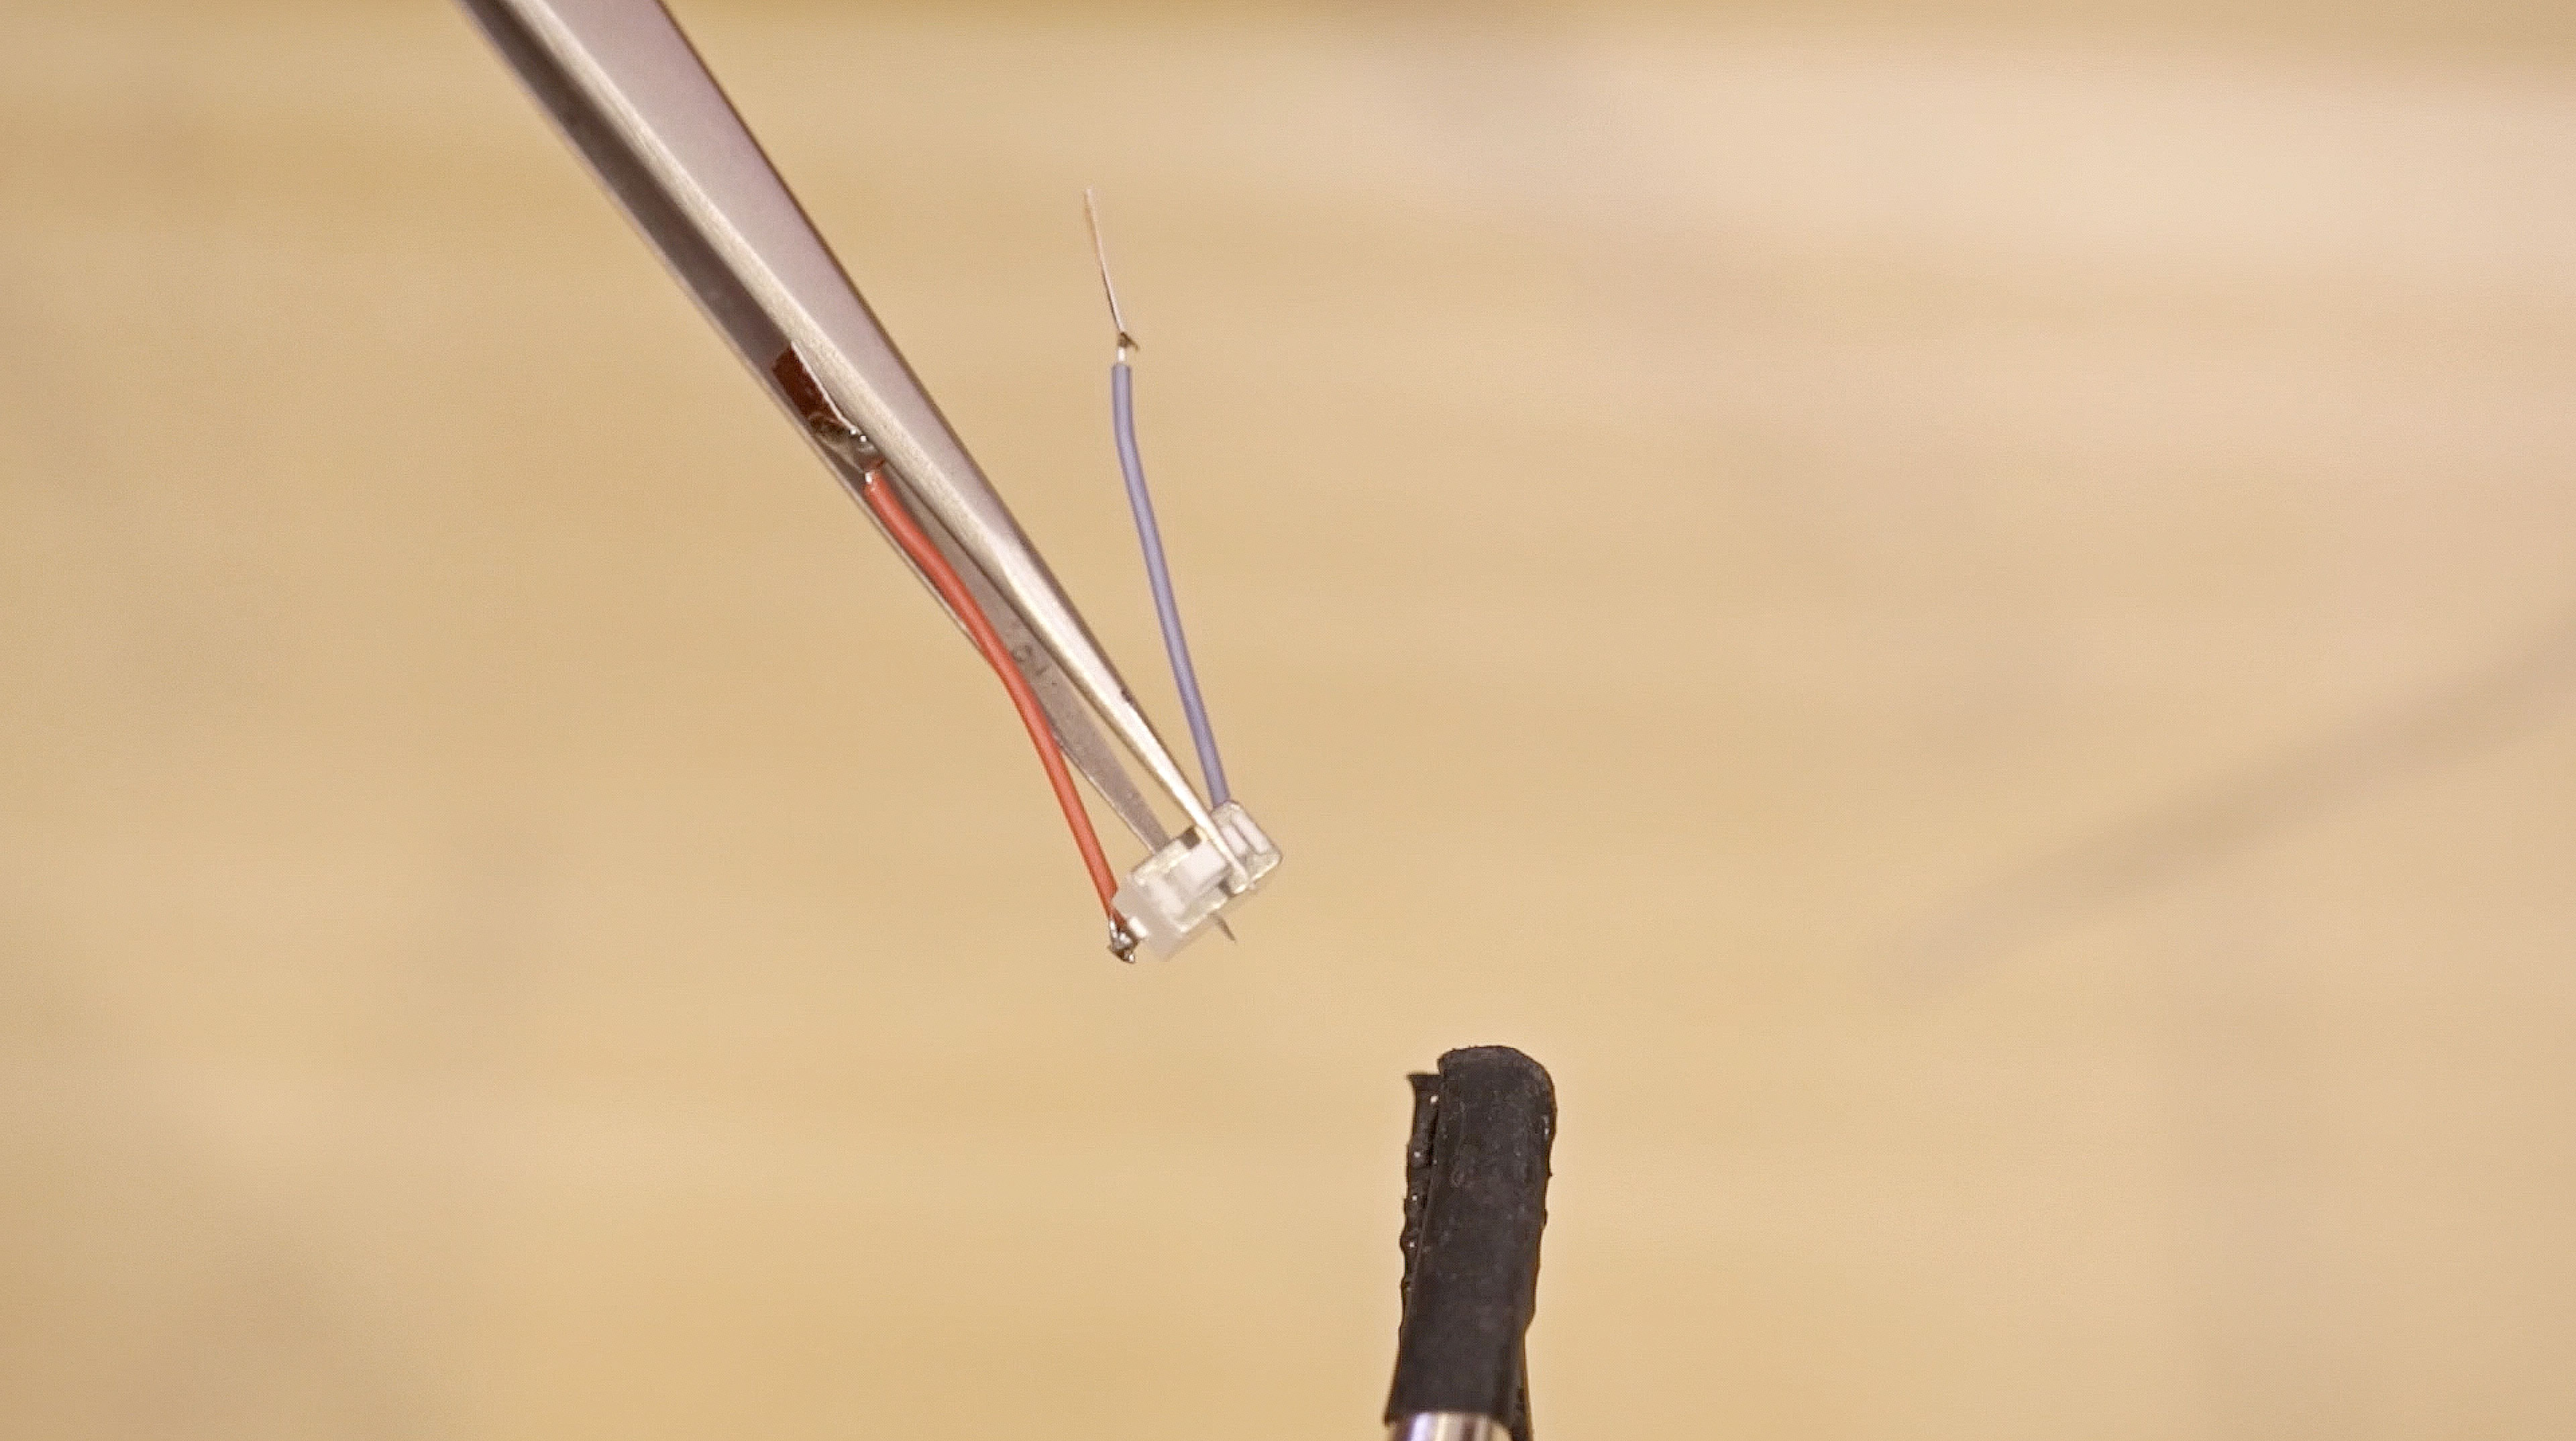 3d_printing_btn-wire-soldered.jpg